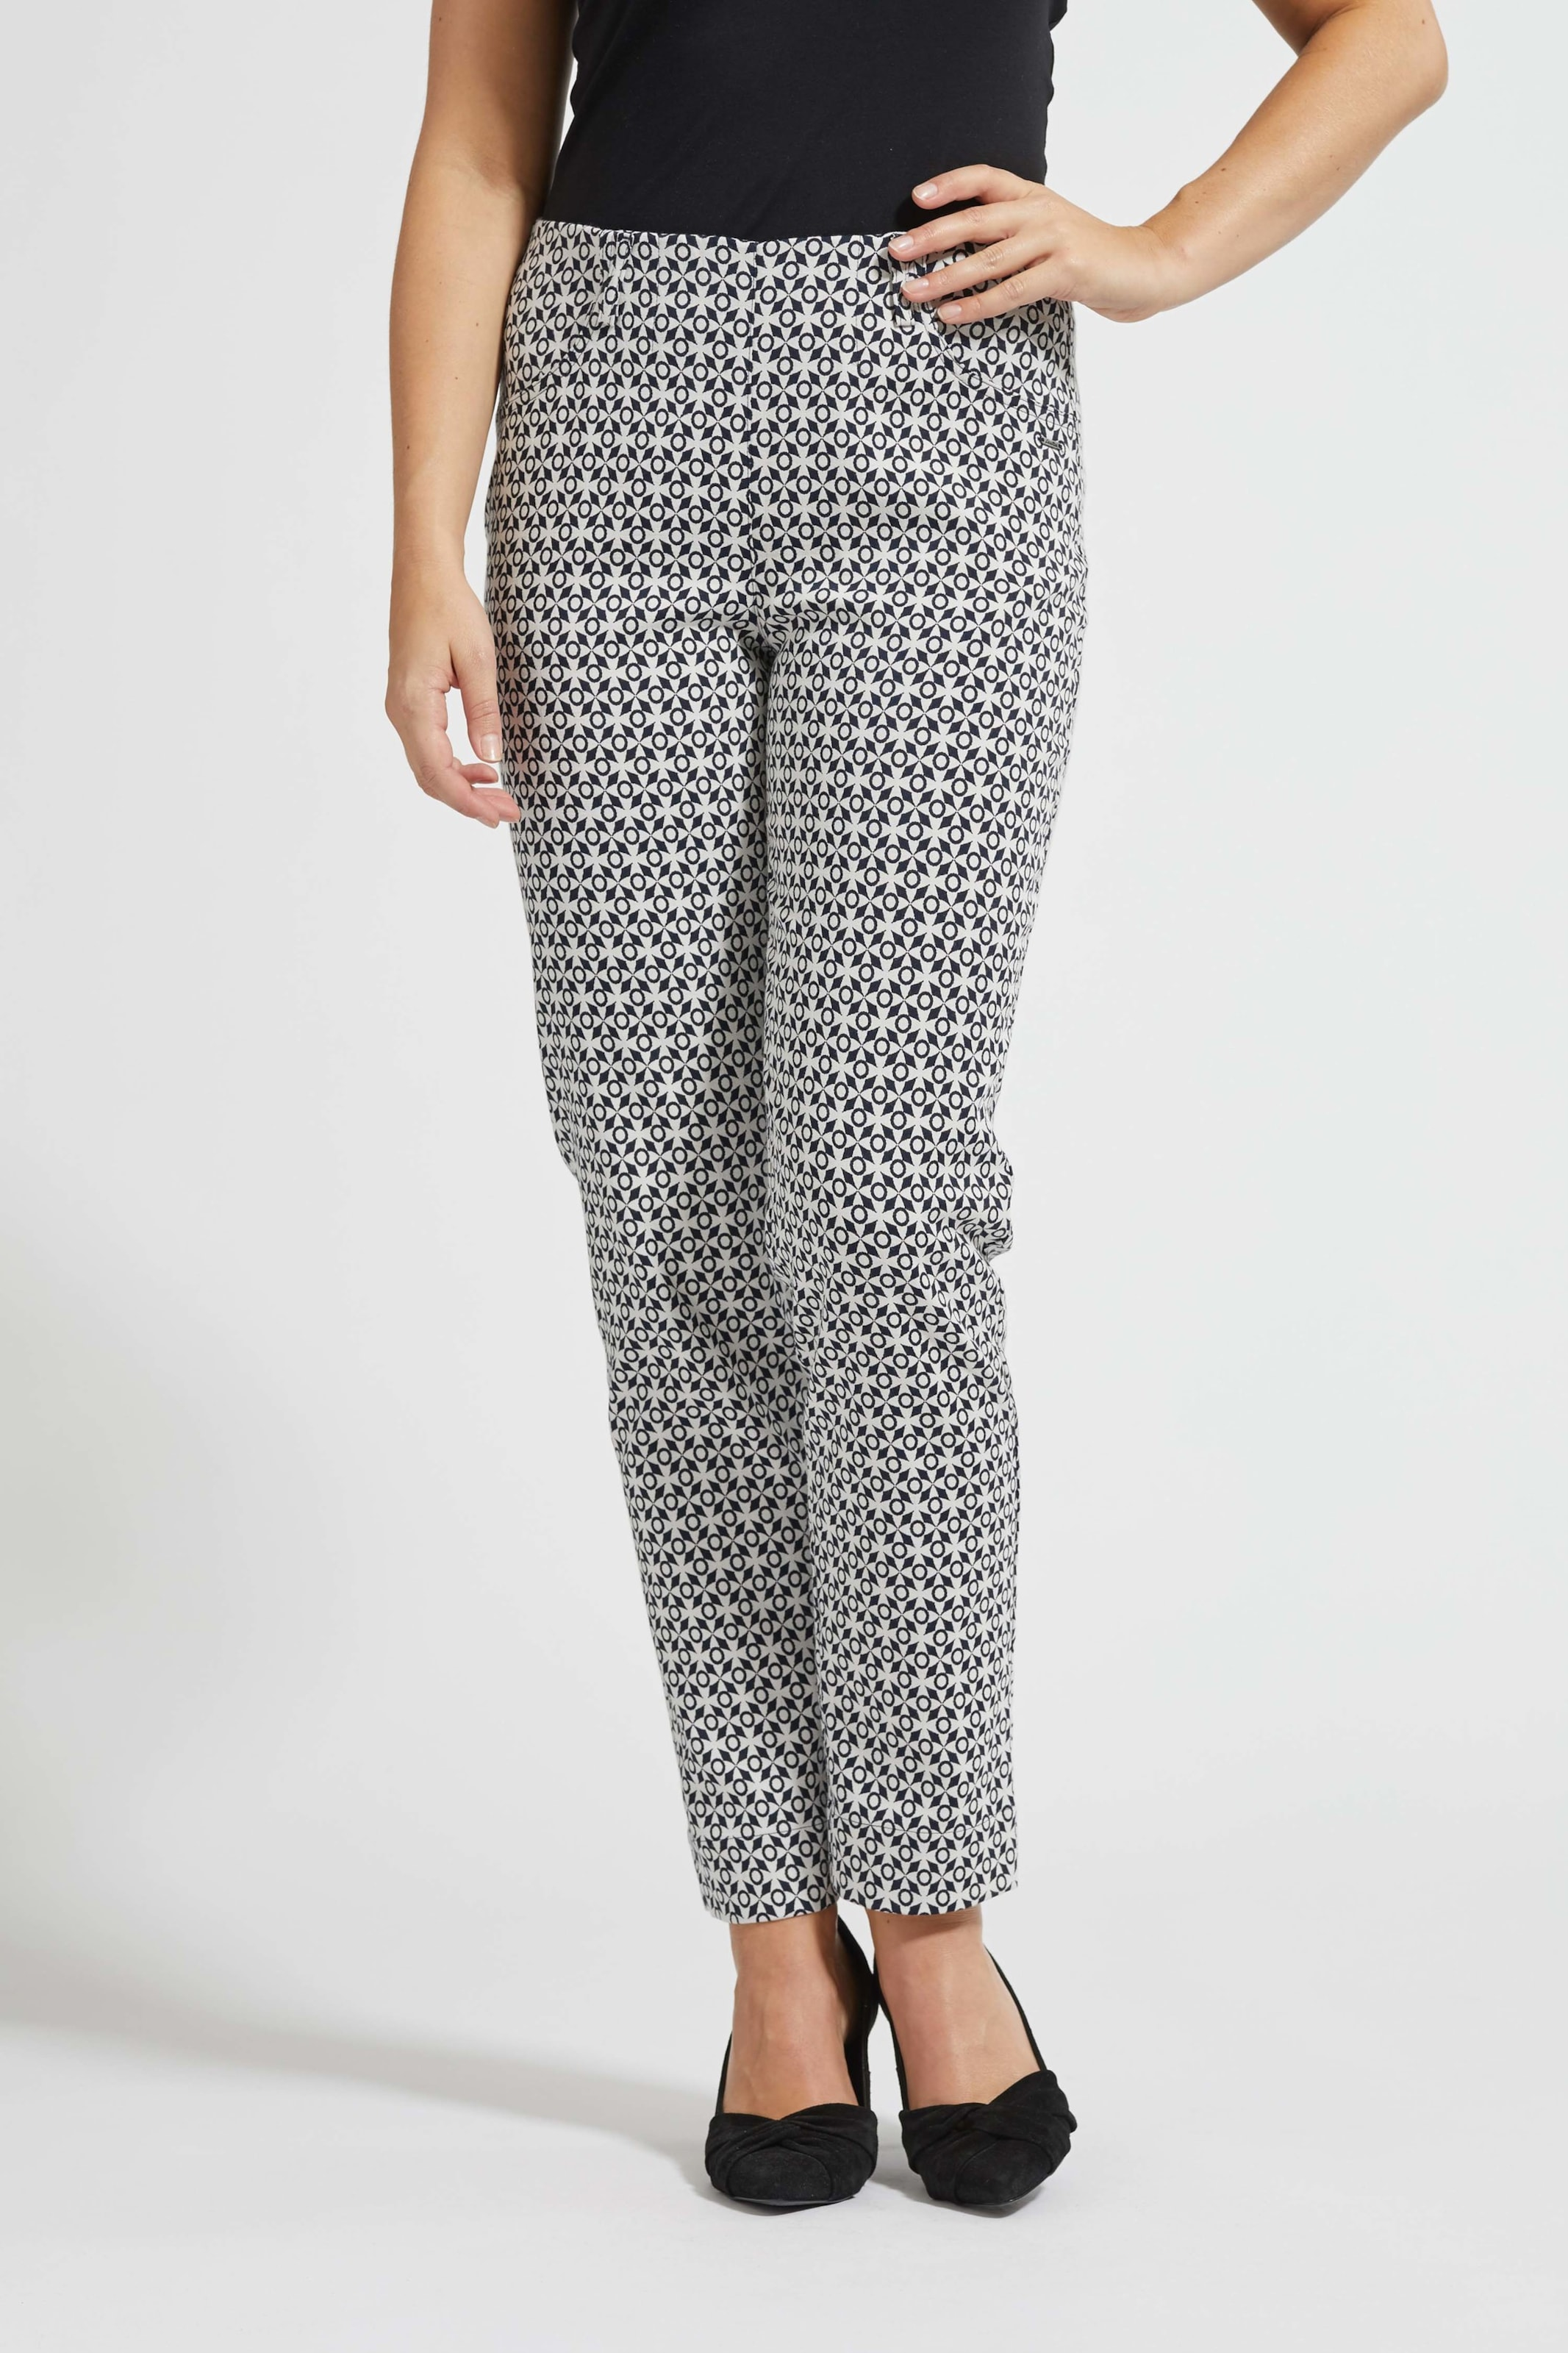 Laurie In 'kelly' In Stoffhose 'kelly' Laurie KobaltblauWeiß Stoffhose KobaltblauWeiß Laurie Stoffhose 'kelly' tsrxhQBdCo